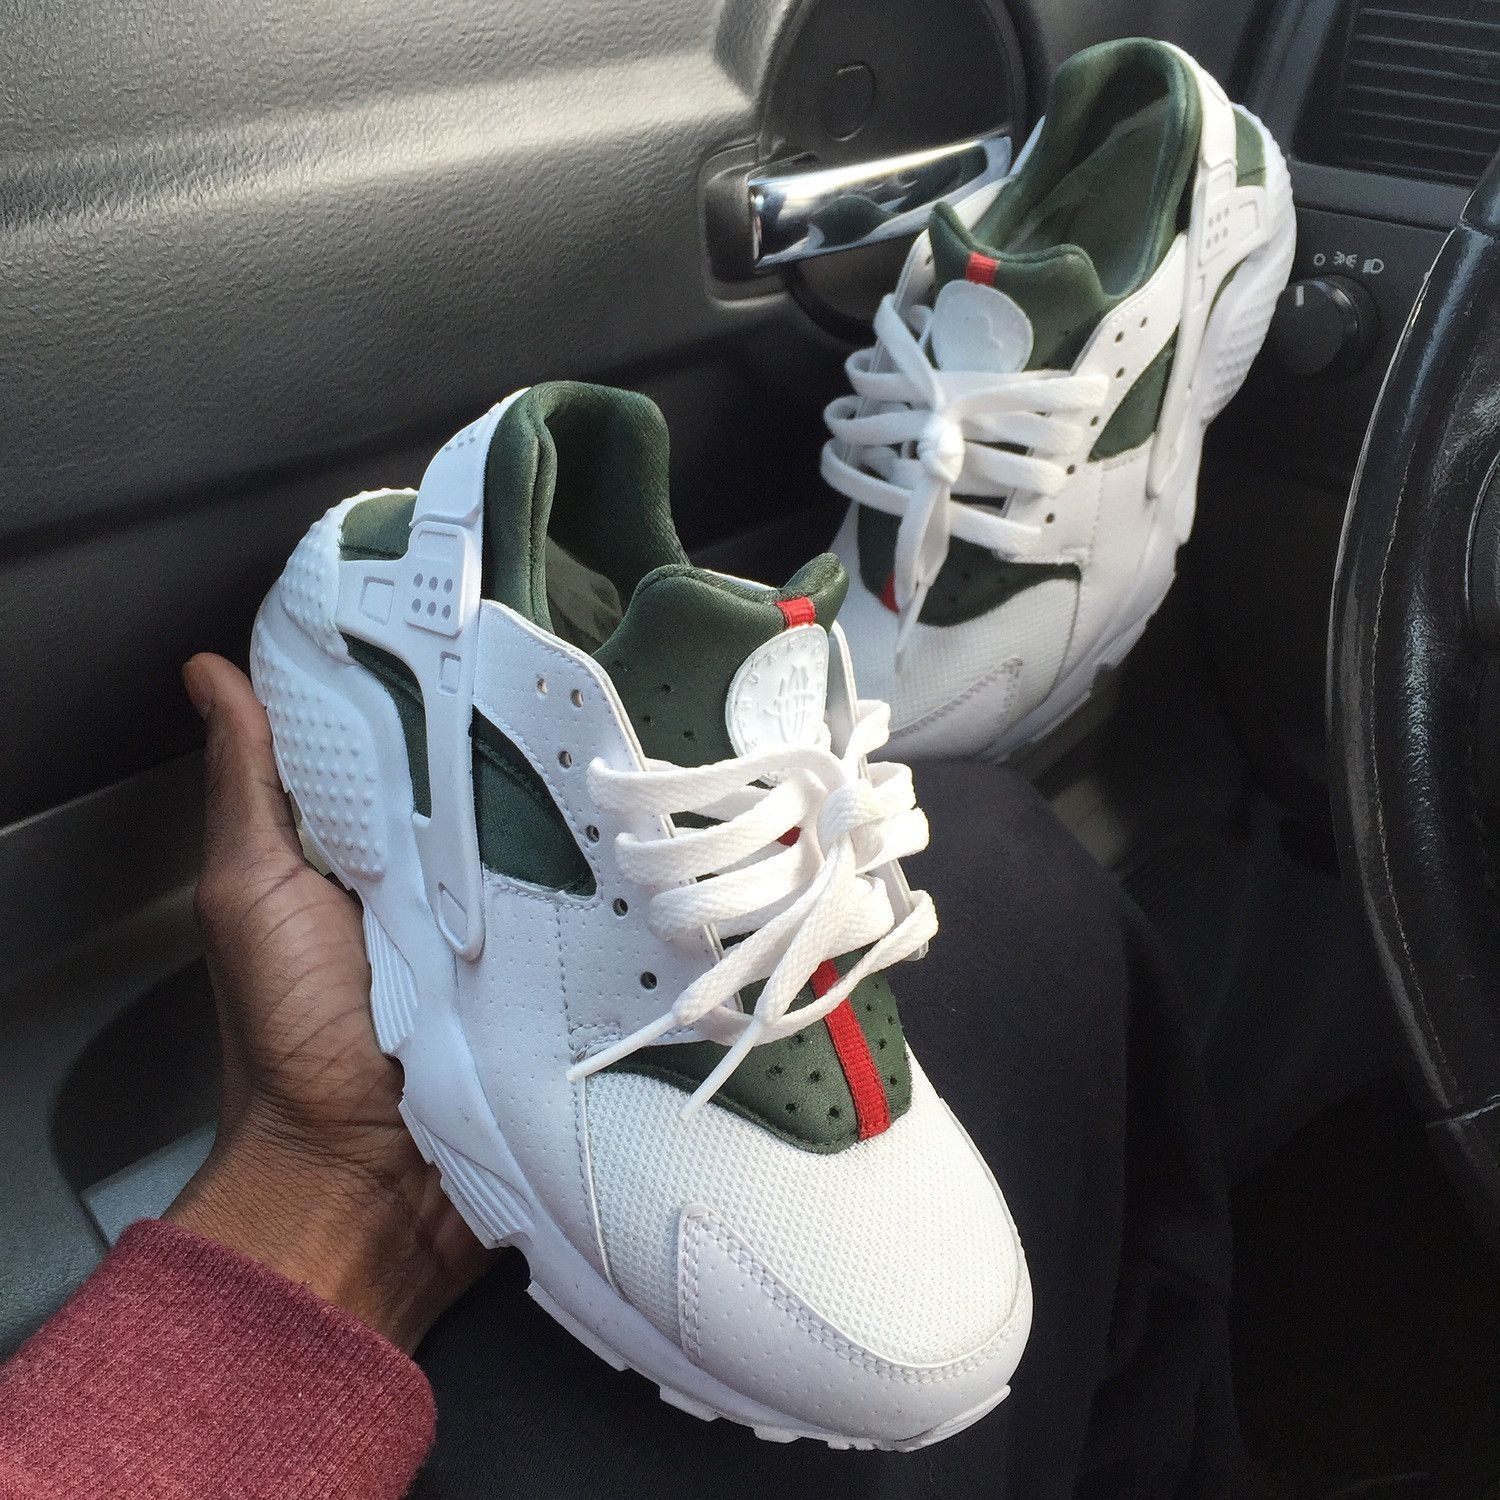 76910c07f ... CUSTOM (Gucci inspired) Air Huaraches shoes ...